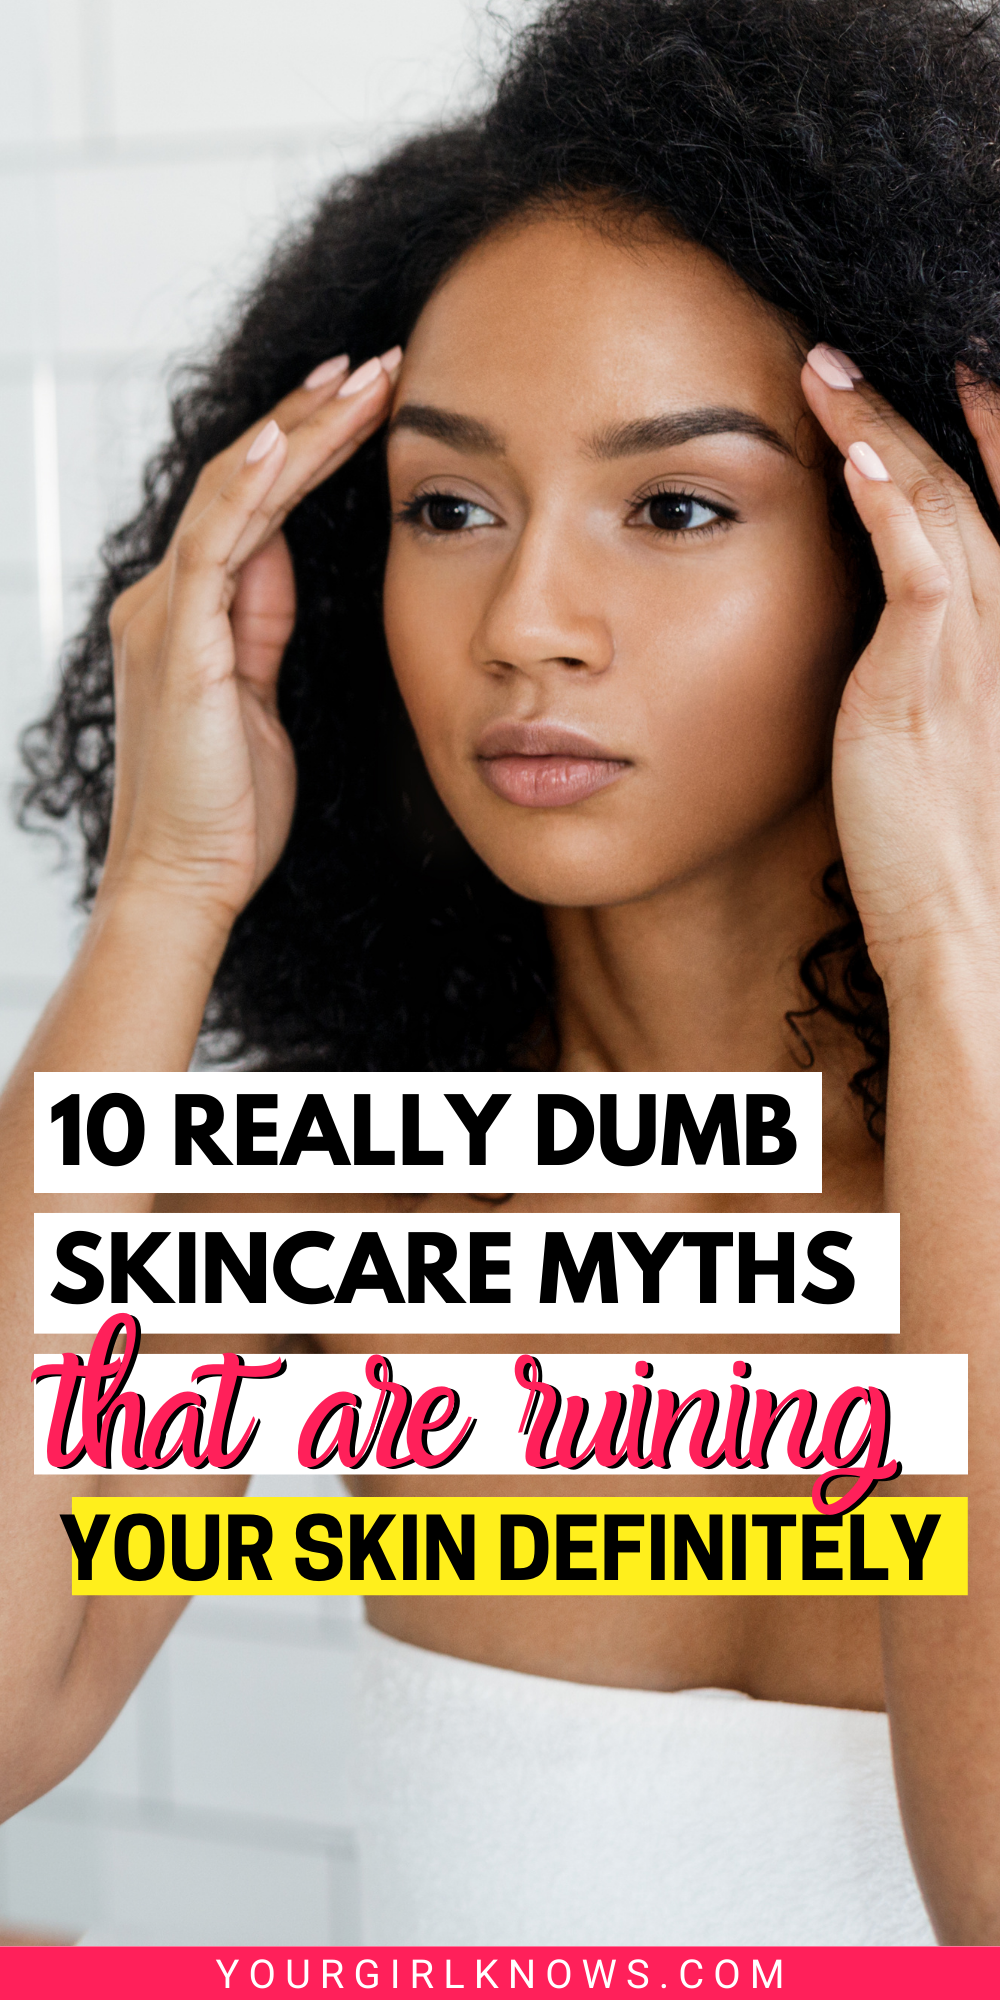 10 SKINCARE MYTHS YOU NEED TO STOP BELIEVING NOW | YOURGIRLKNOWS